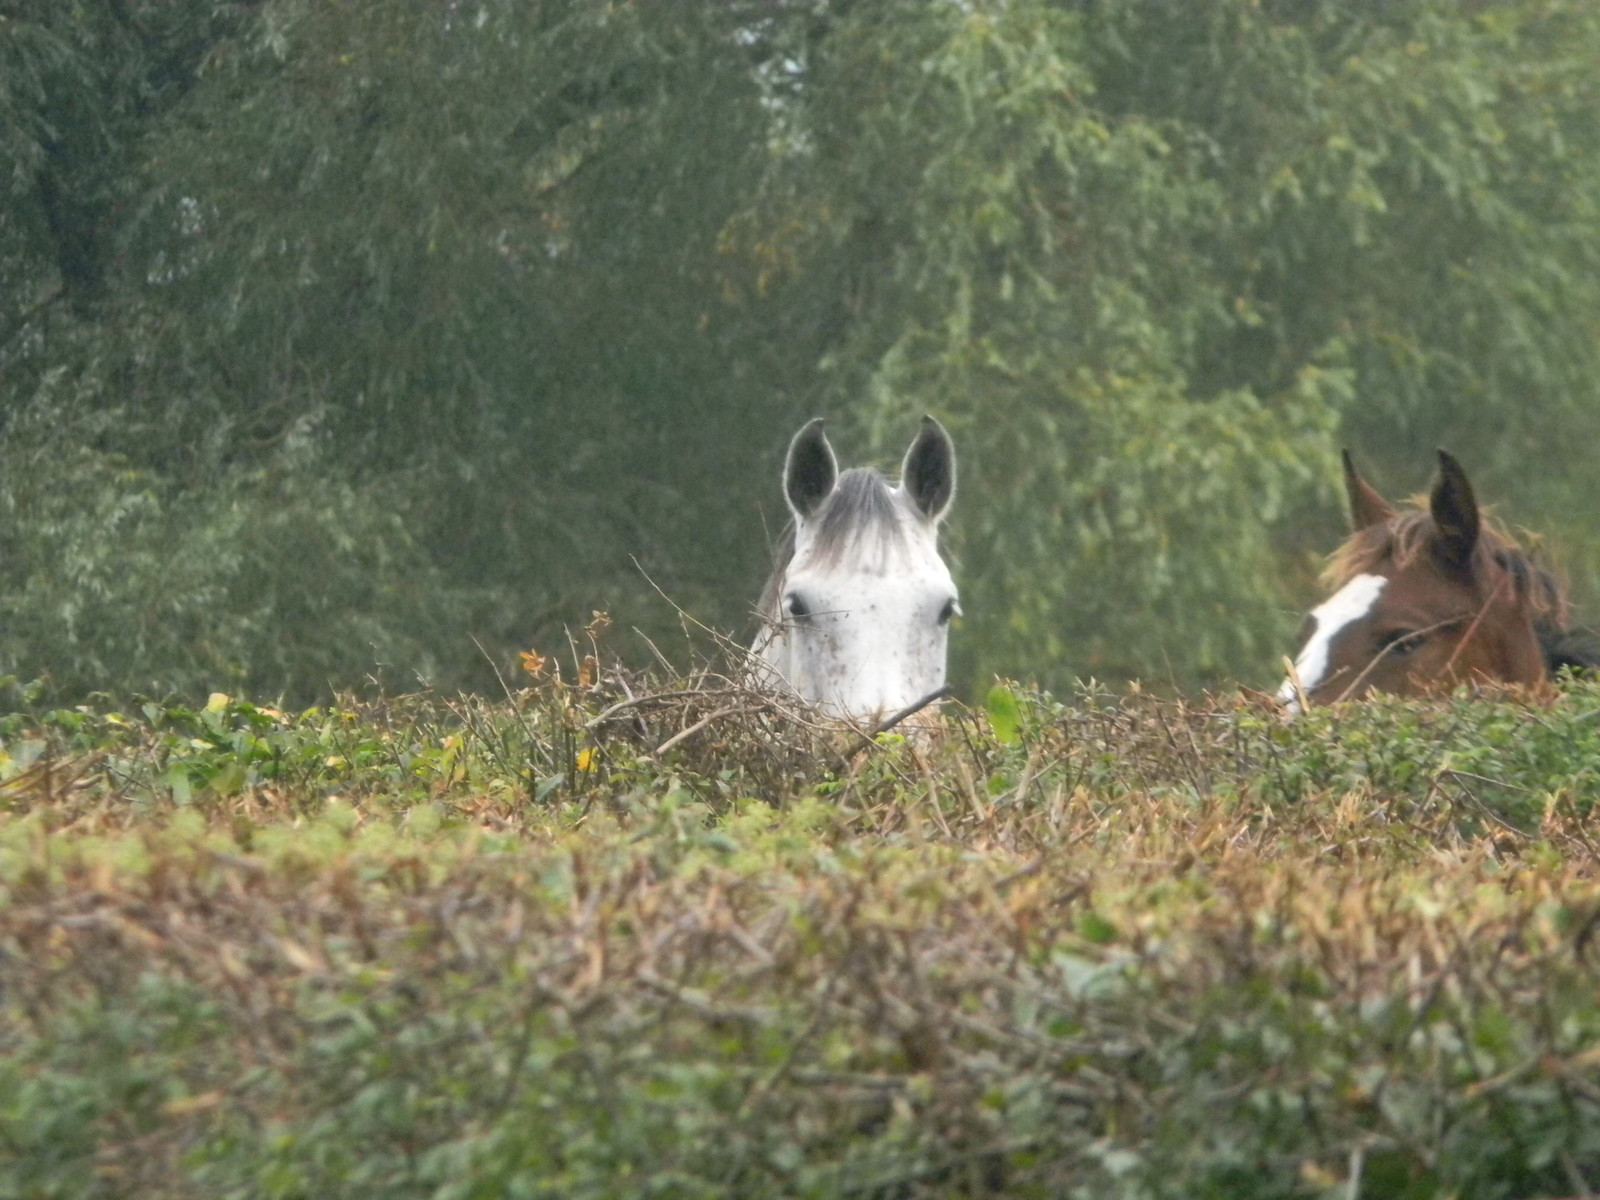 Horse Pies I mean horse spies....Ockley to Warnham